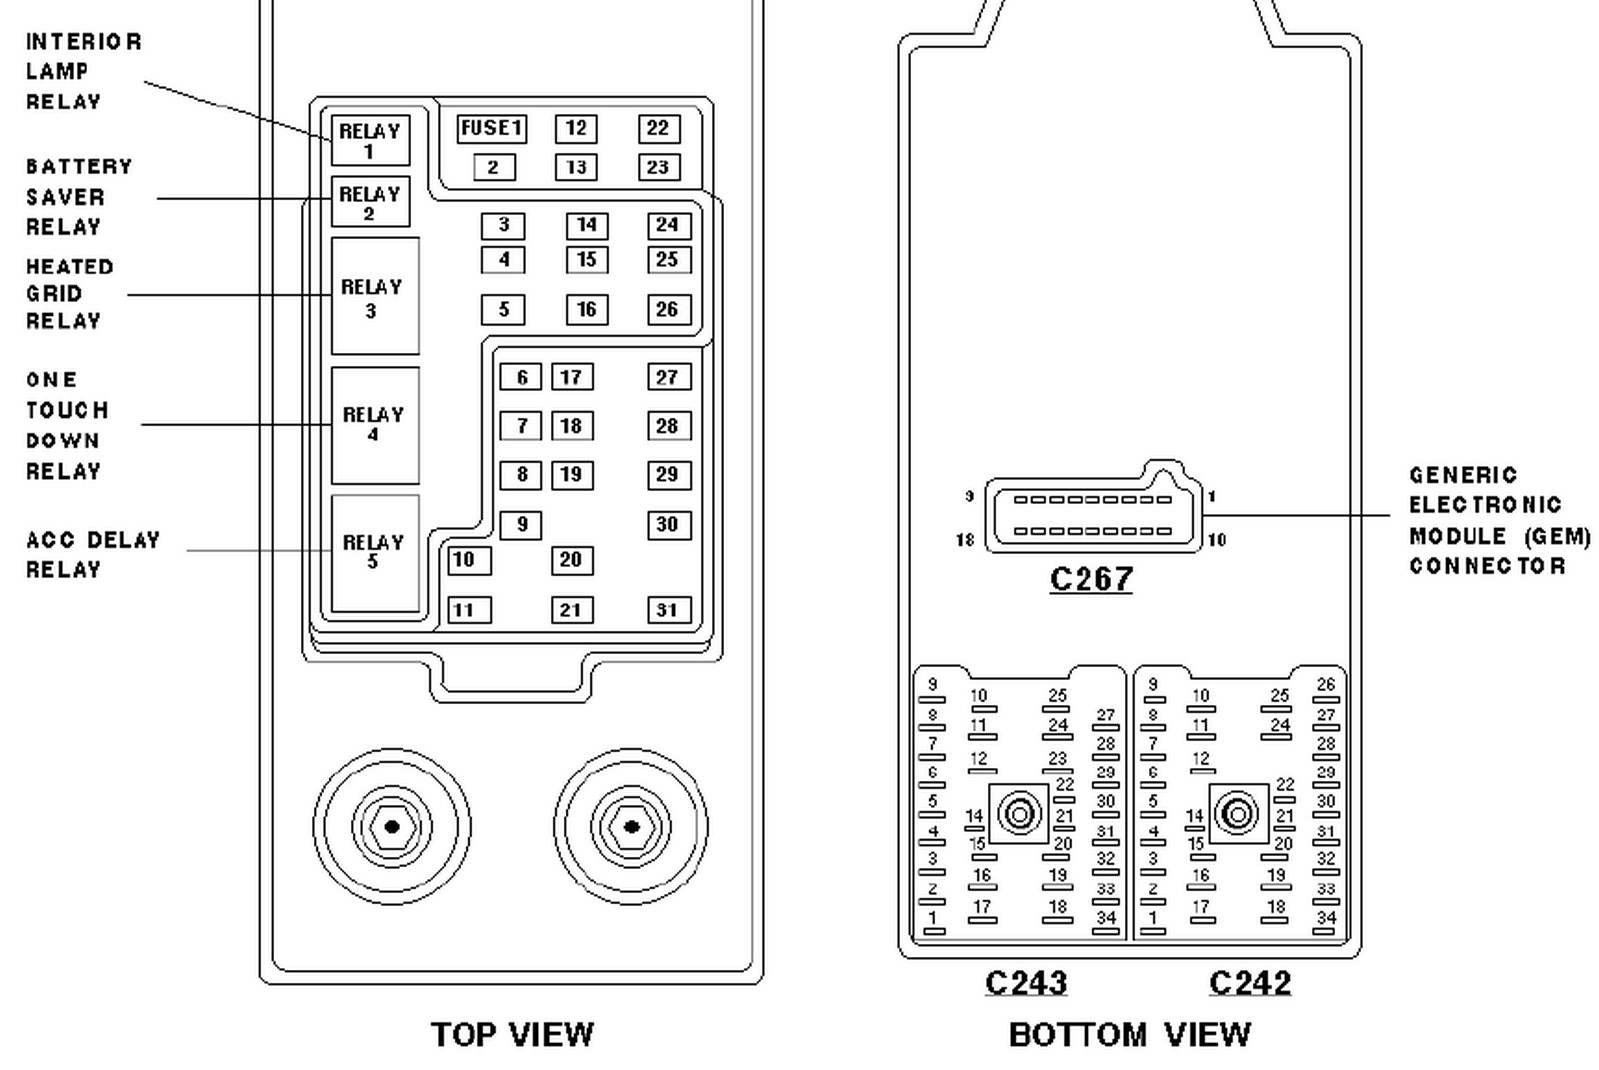 Diagram On 1997 Expedition Fuses Wiring Library Fuse Box For 1998 F 150 Pickup Ford Image Details Truck 750